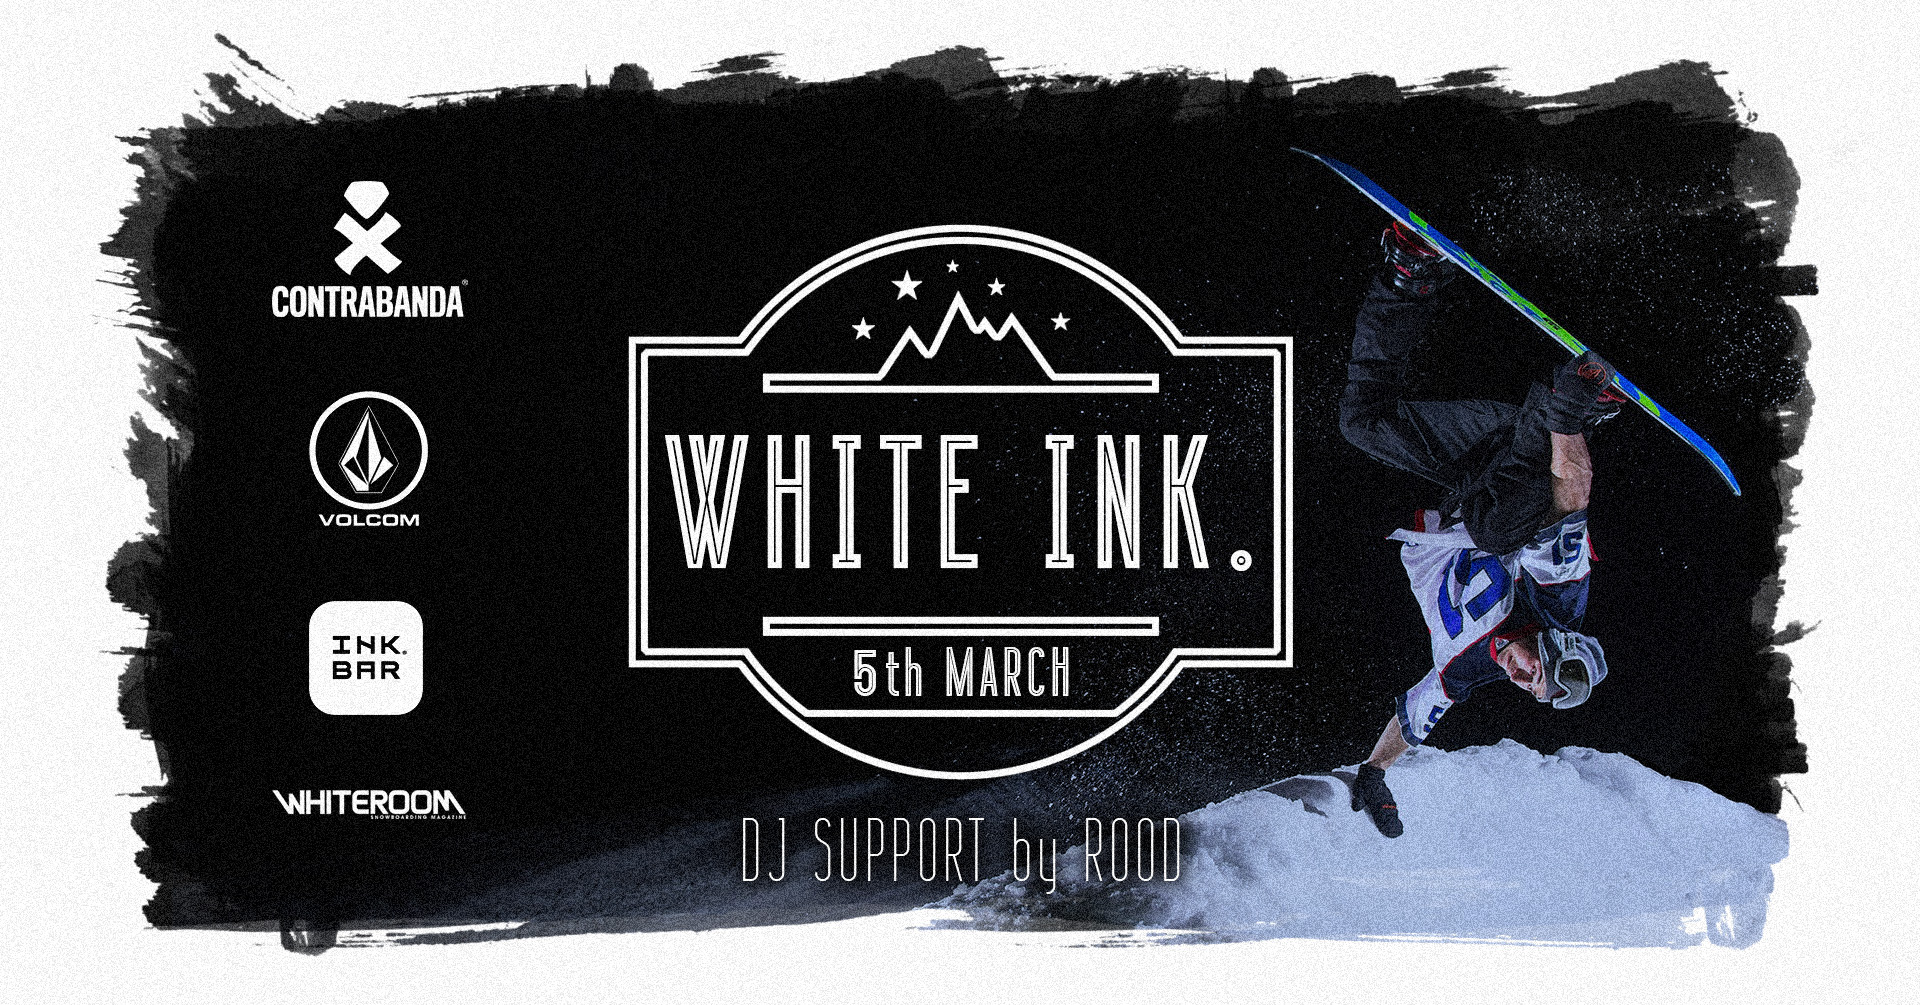 White Ink Party feat. Contrabanda & Volcom